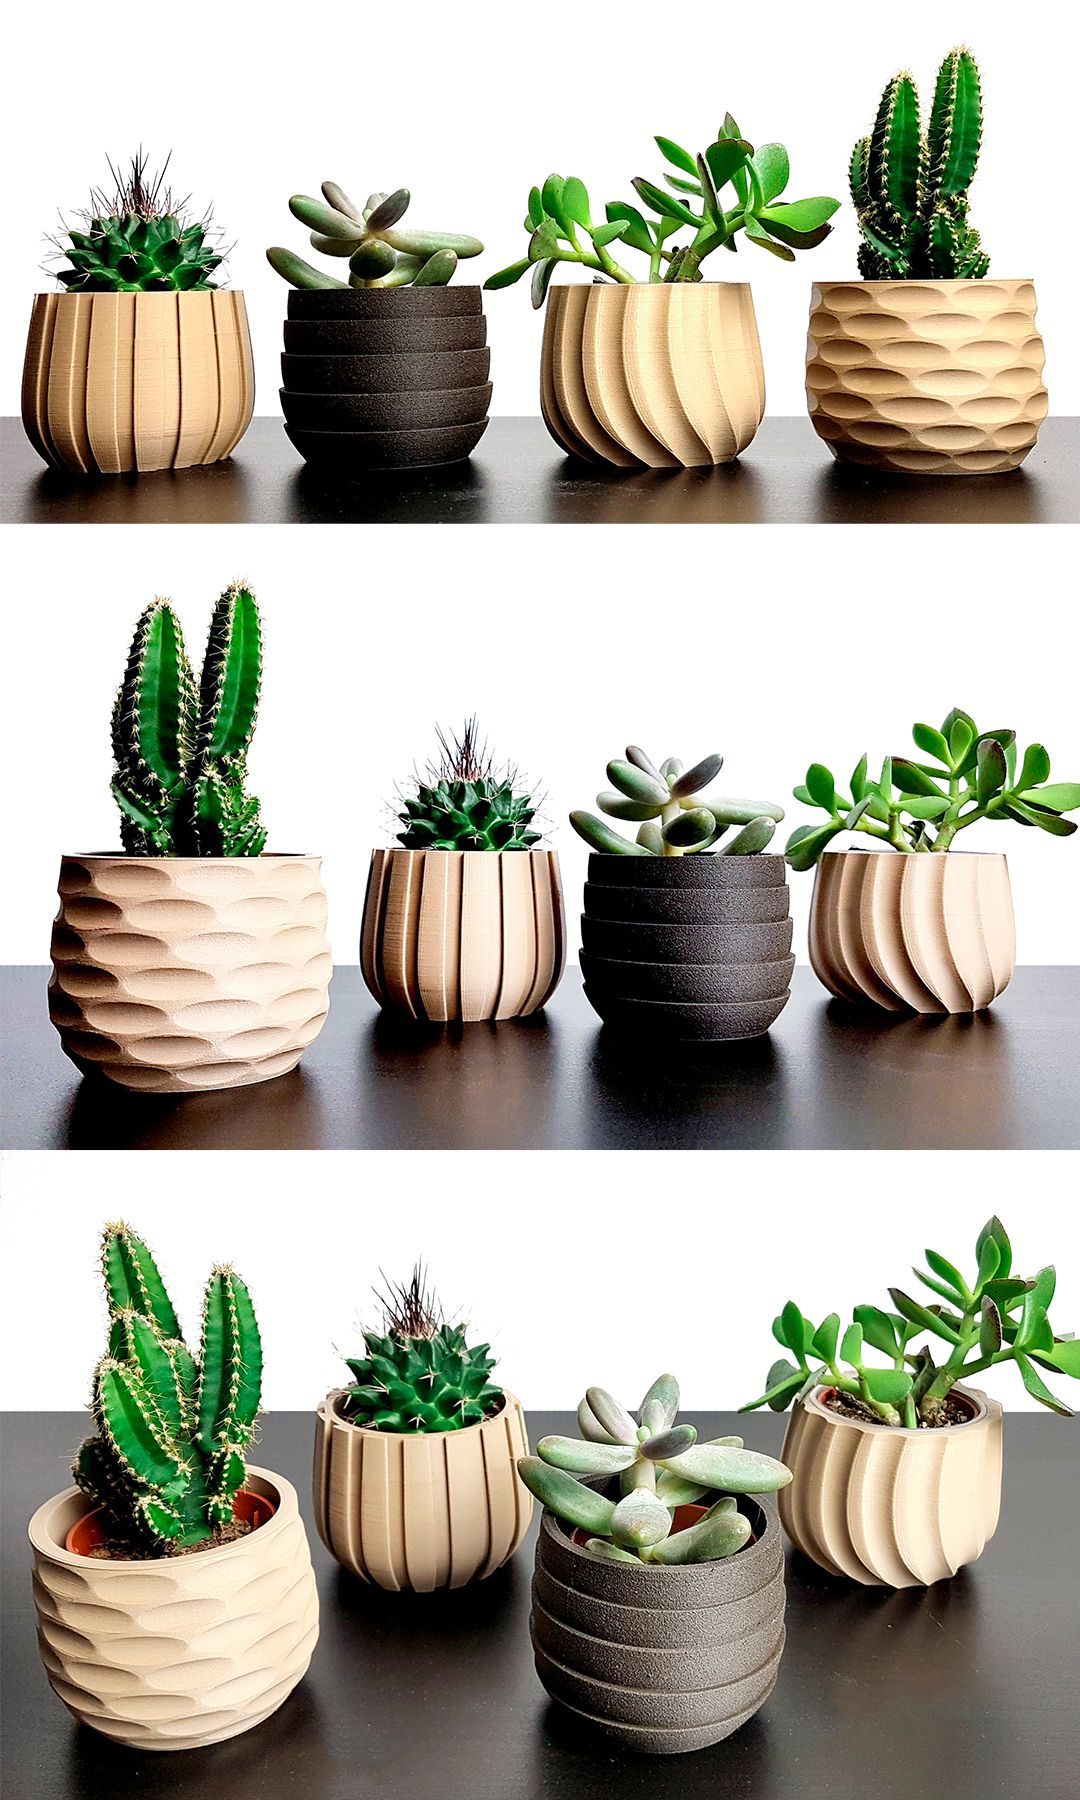 SET Succulent Planter , 4 Planter Pots for succulent and cactus, Indoor Wood Planter set